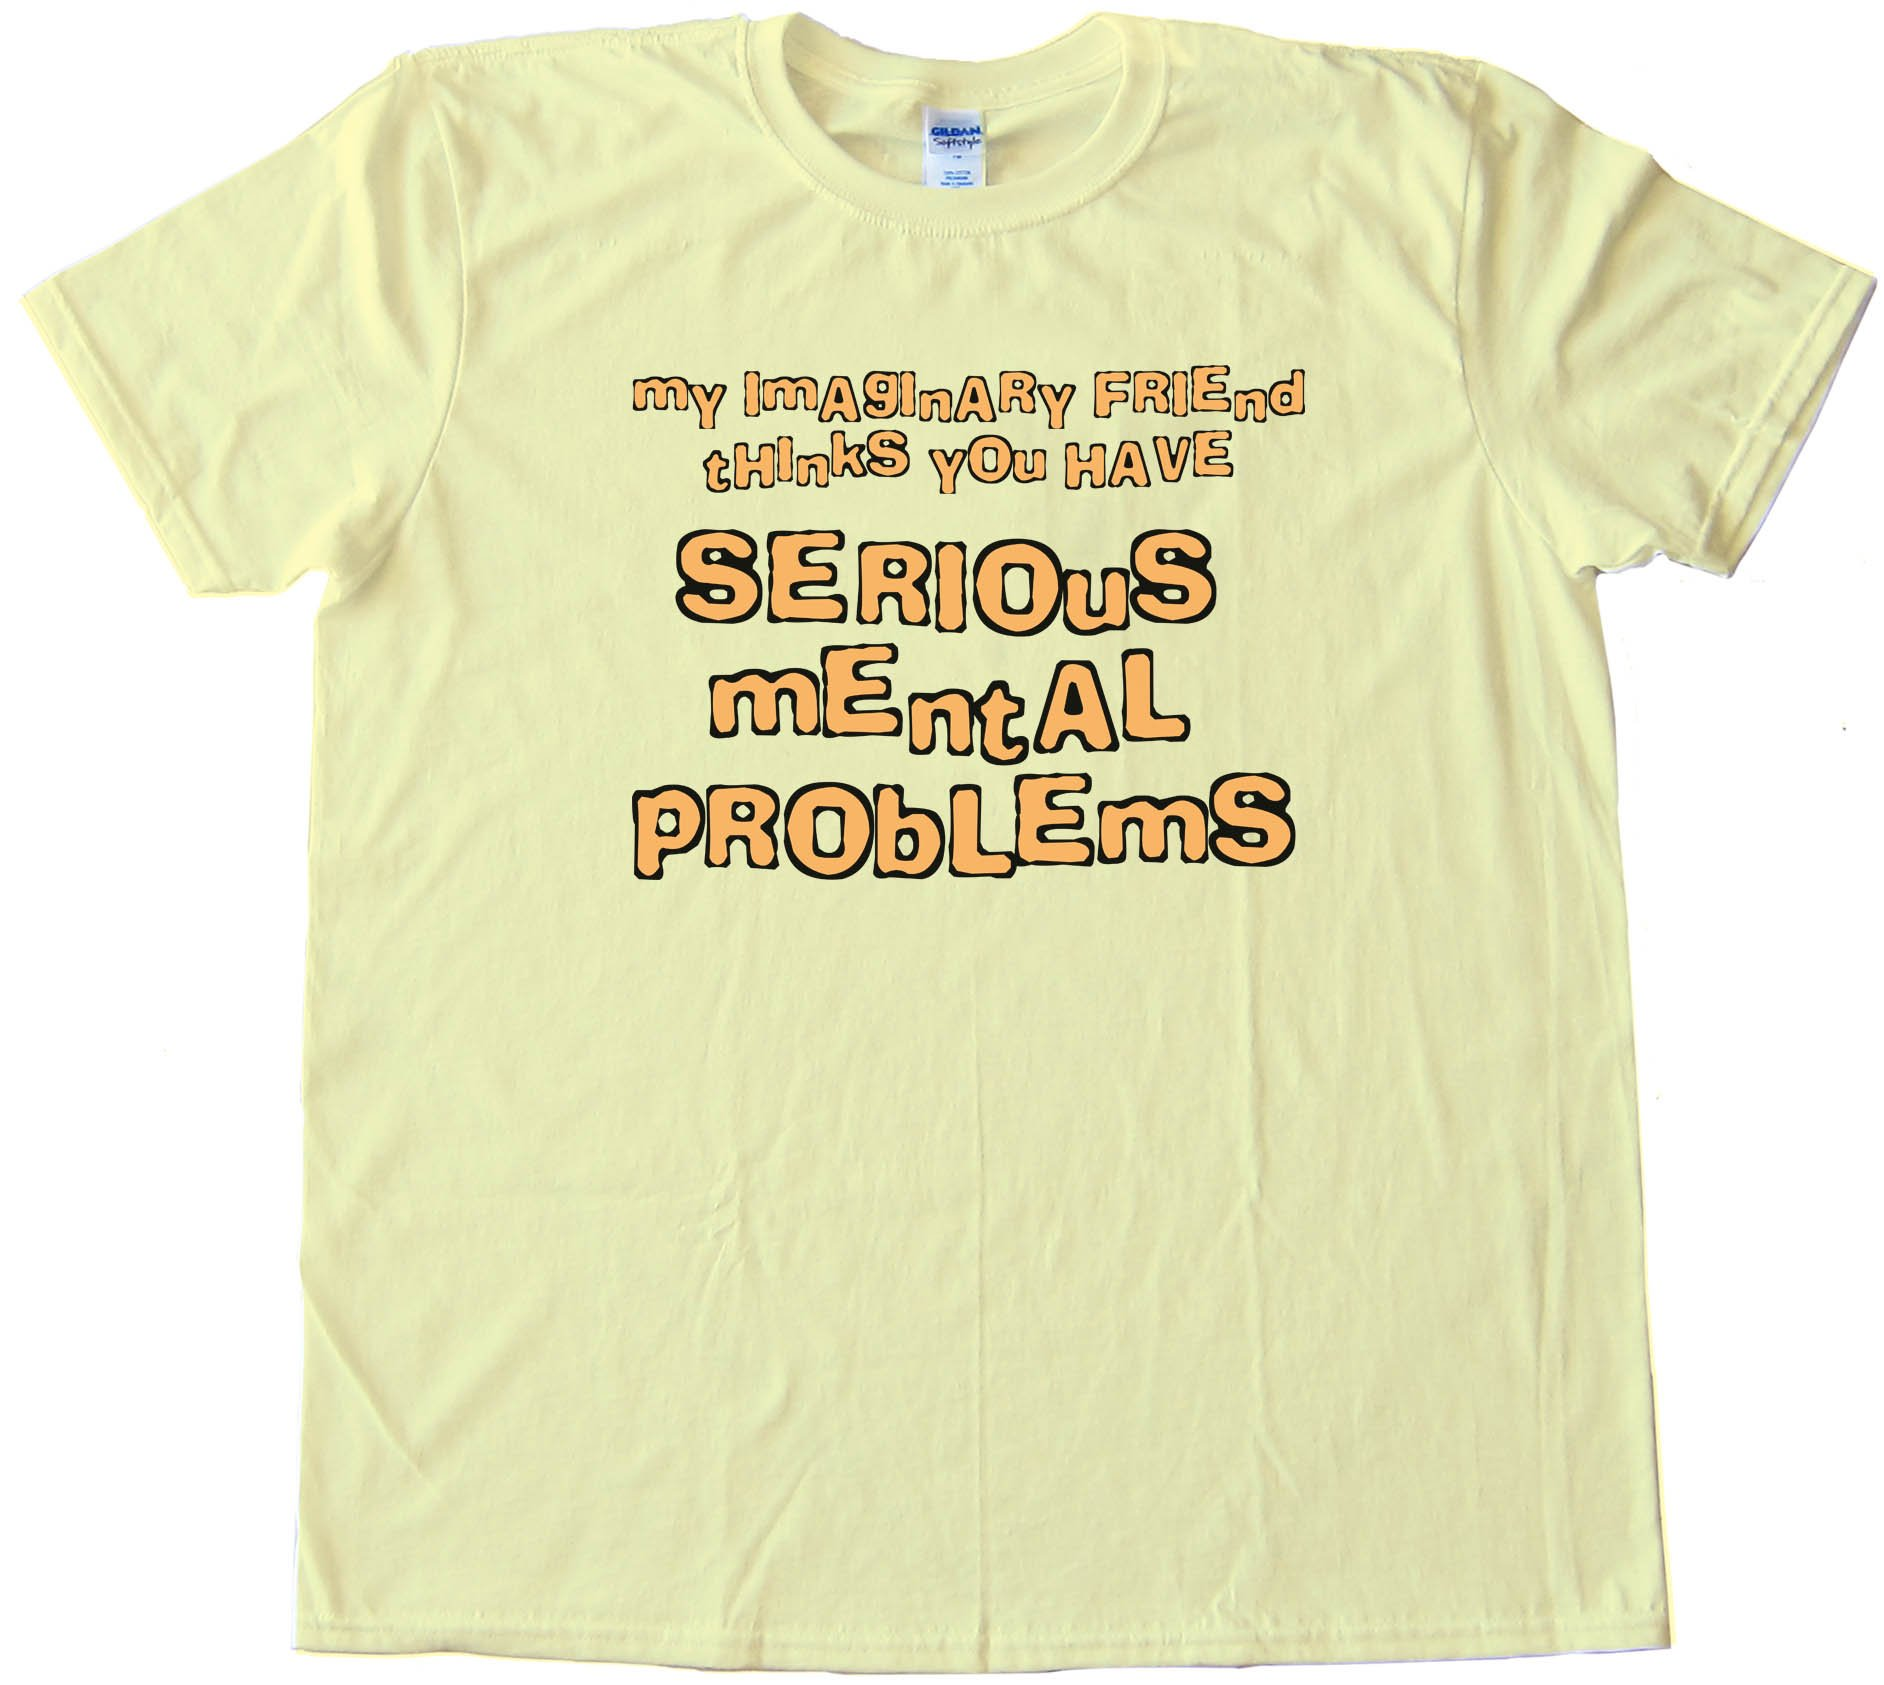 My Imaginary Friend Thinks You Have Serious Mental Problems - Tee Shirt